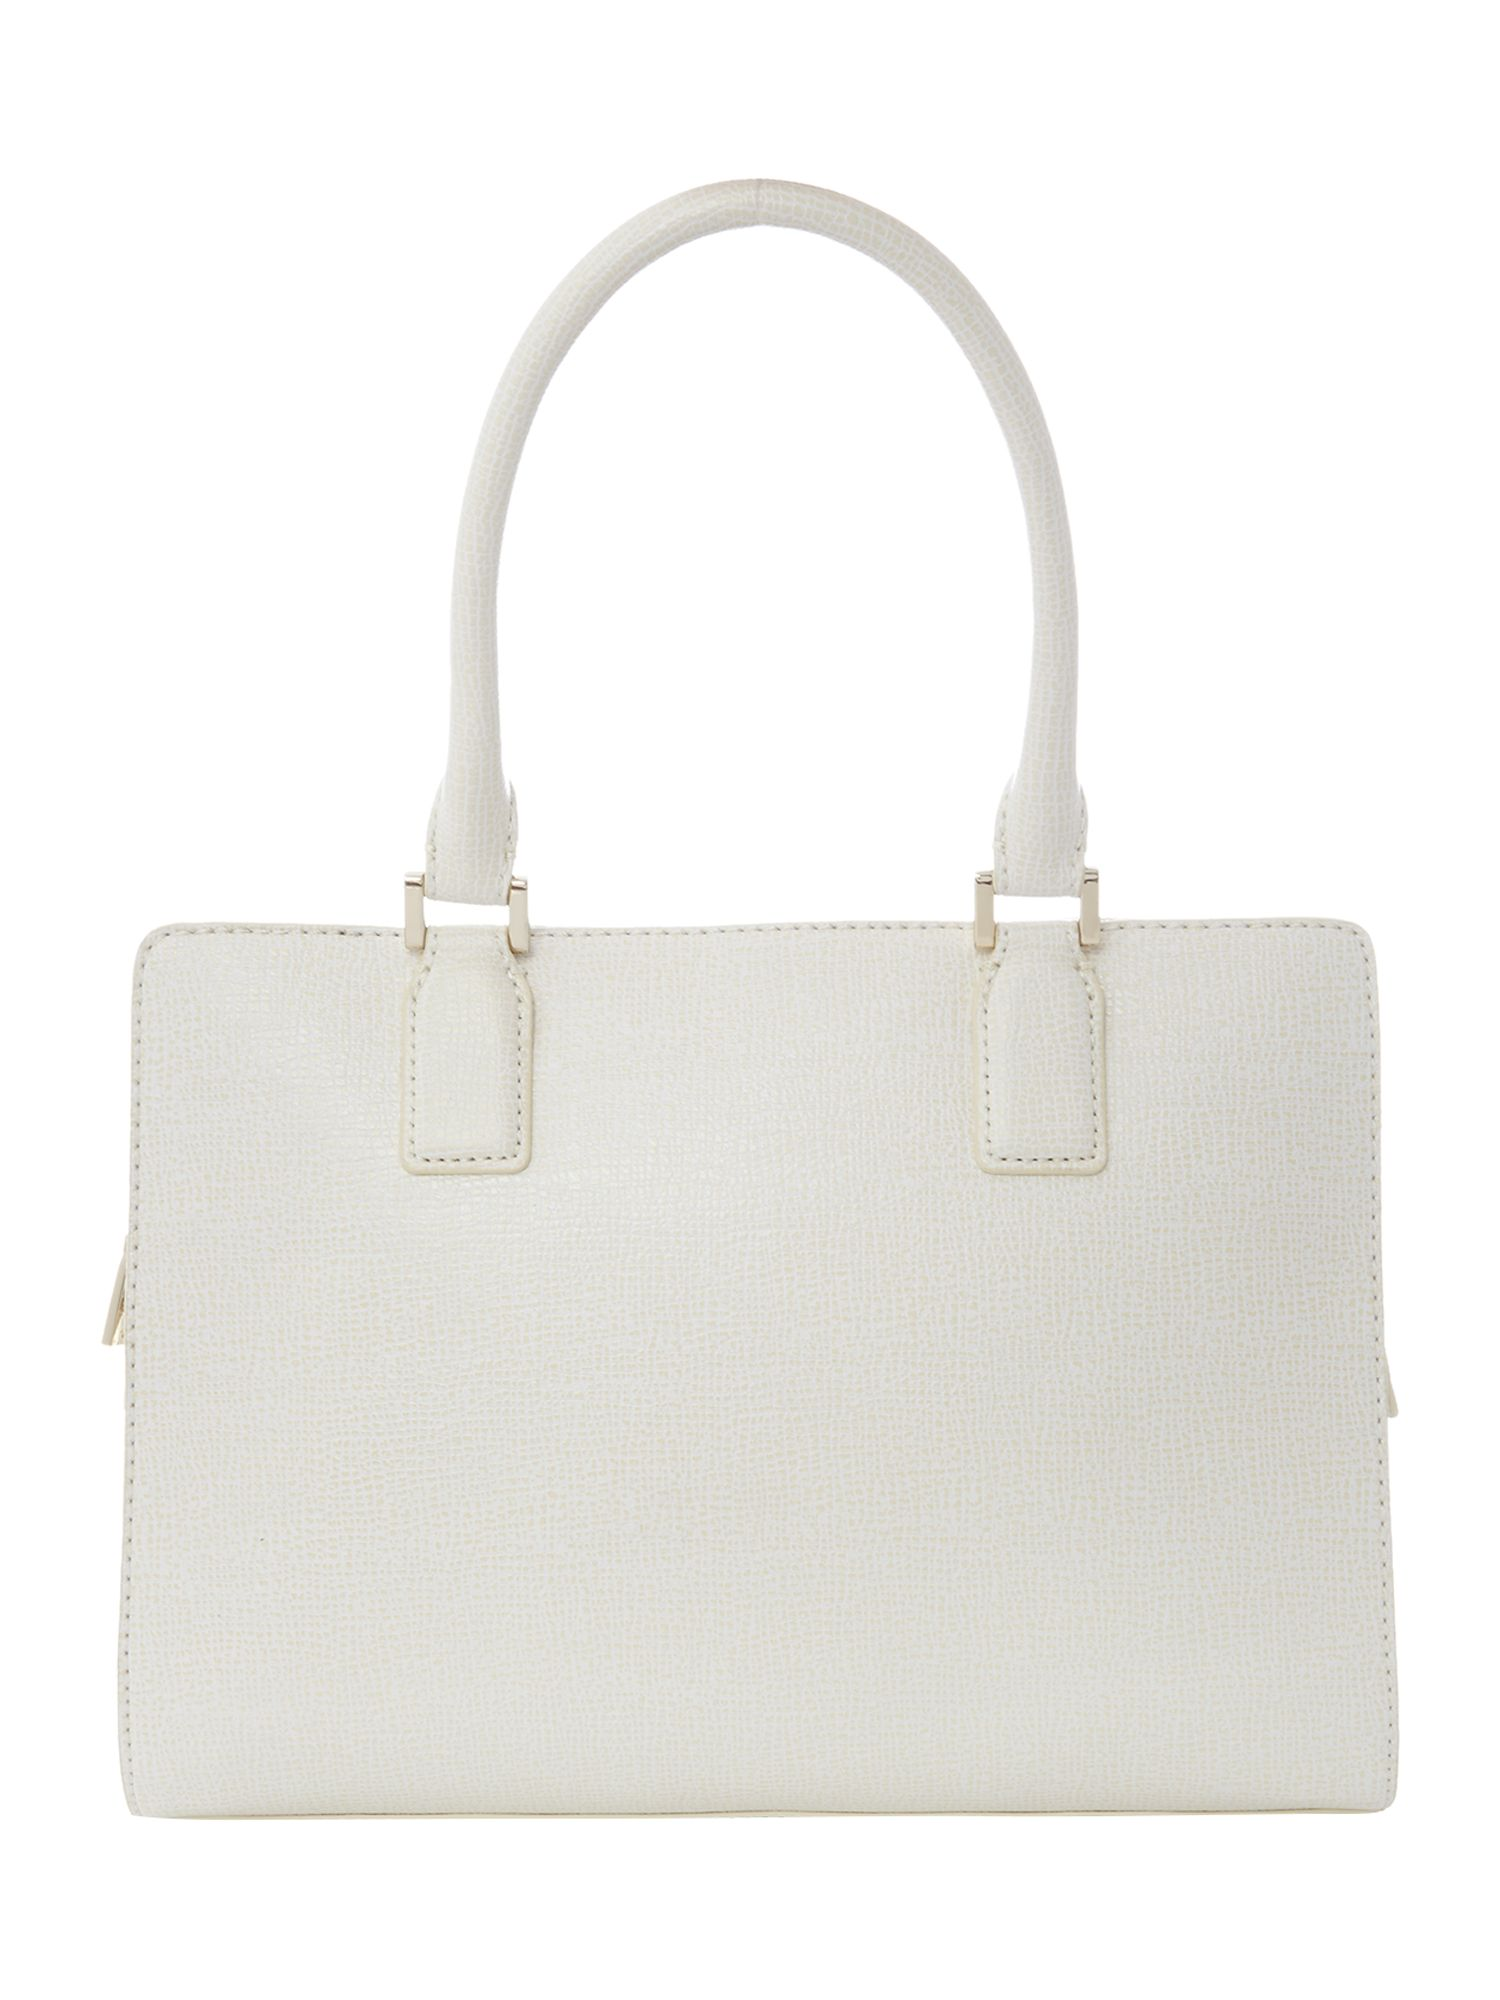 Cream large saffiano tote bag